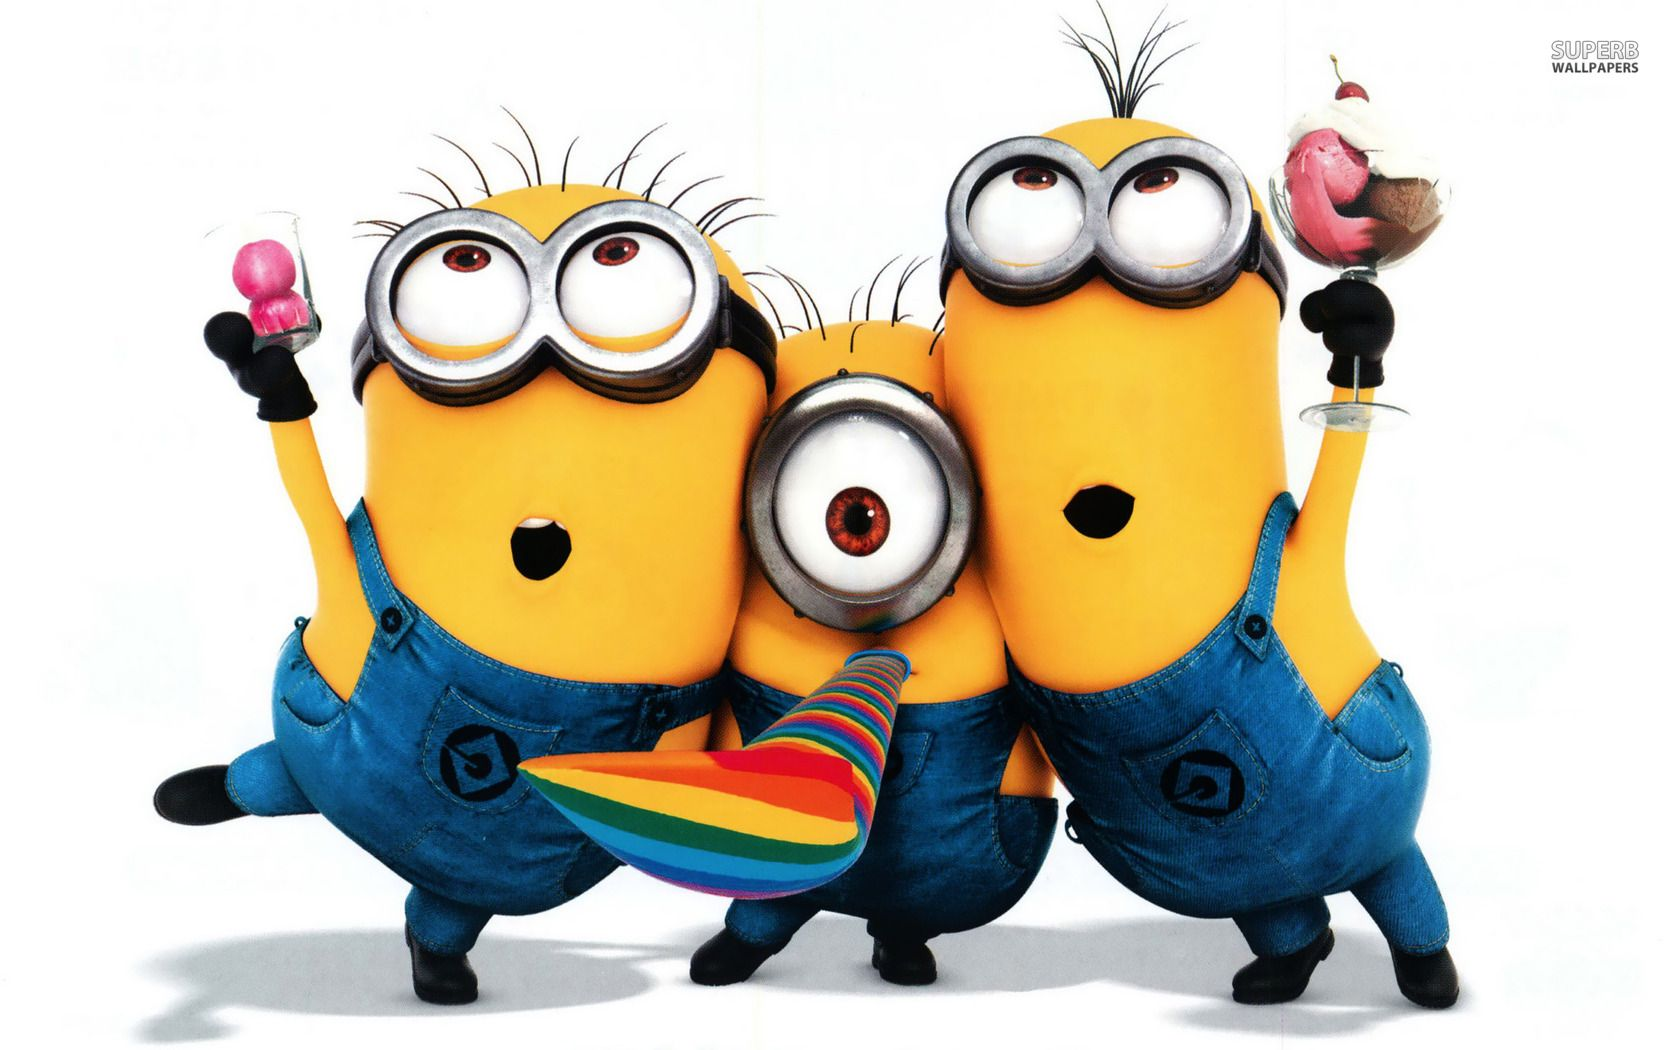 Minion wallpaper hd wallpapers download free minion - Despicable me minion screensaver ...